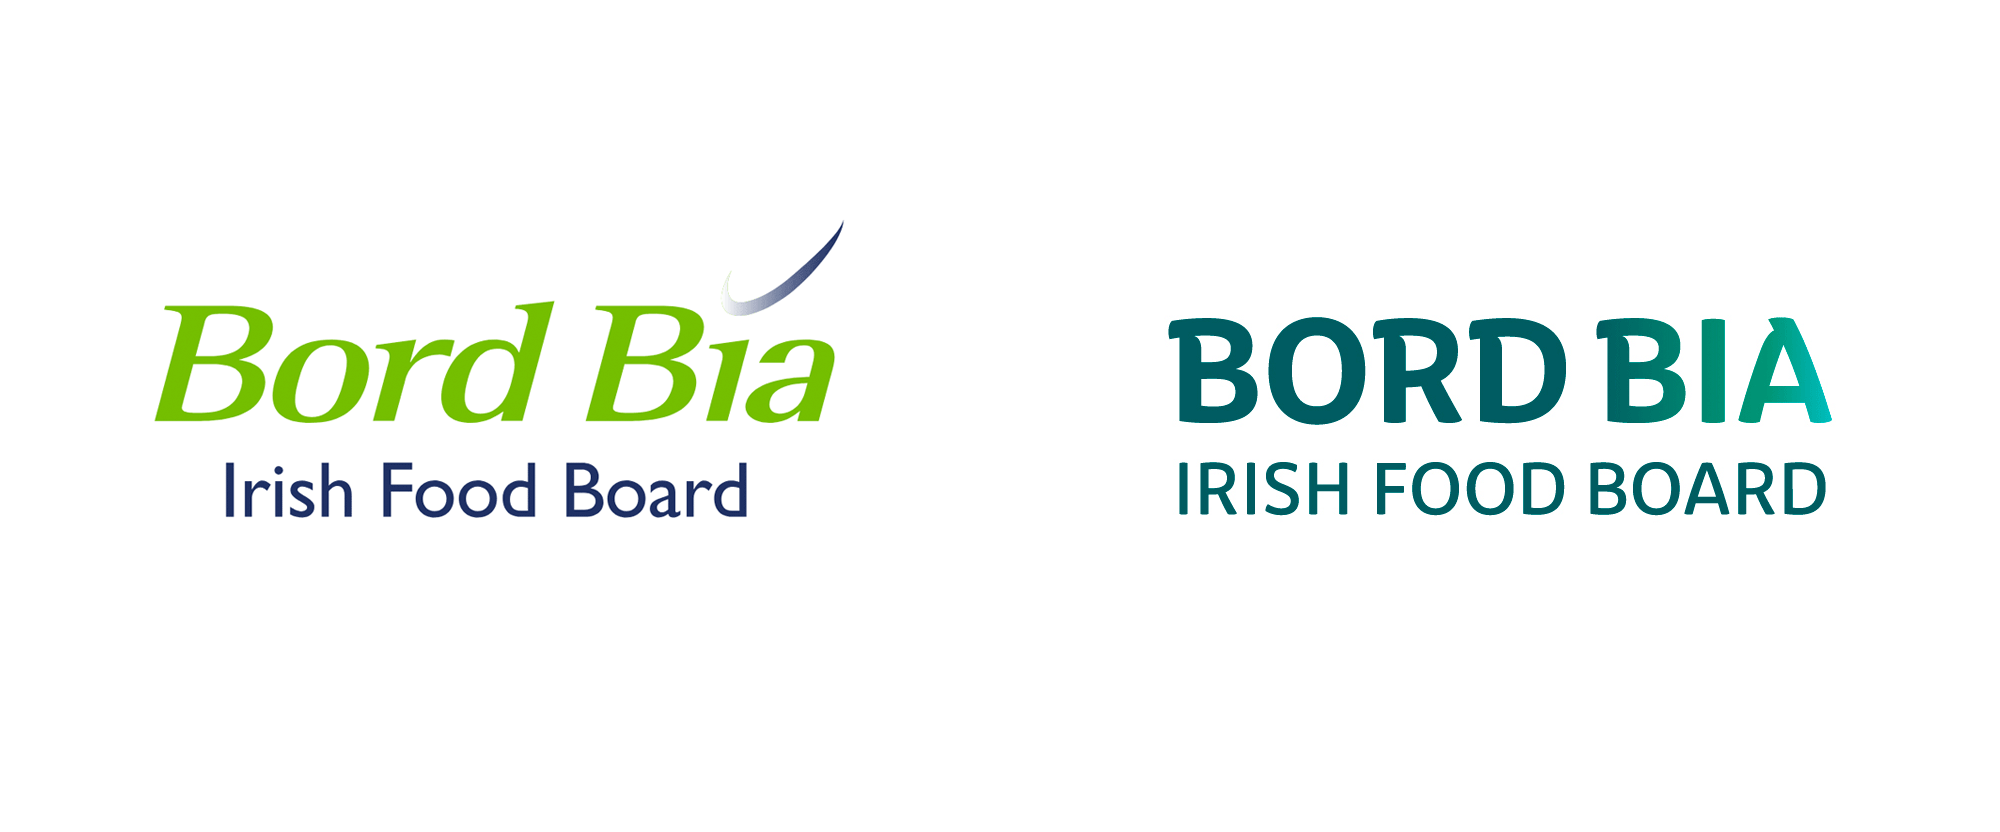 New Logo and Identity for Bord Bia by DesignWorks